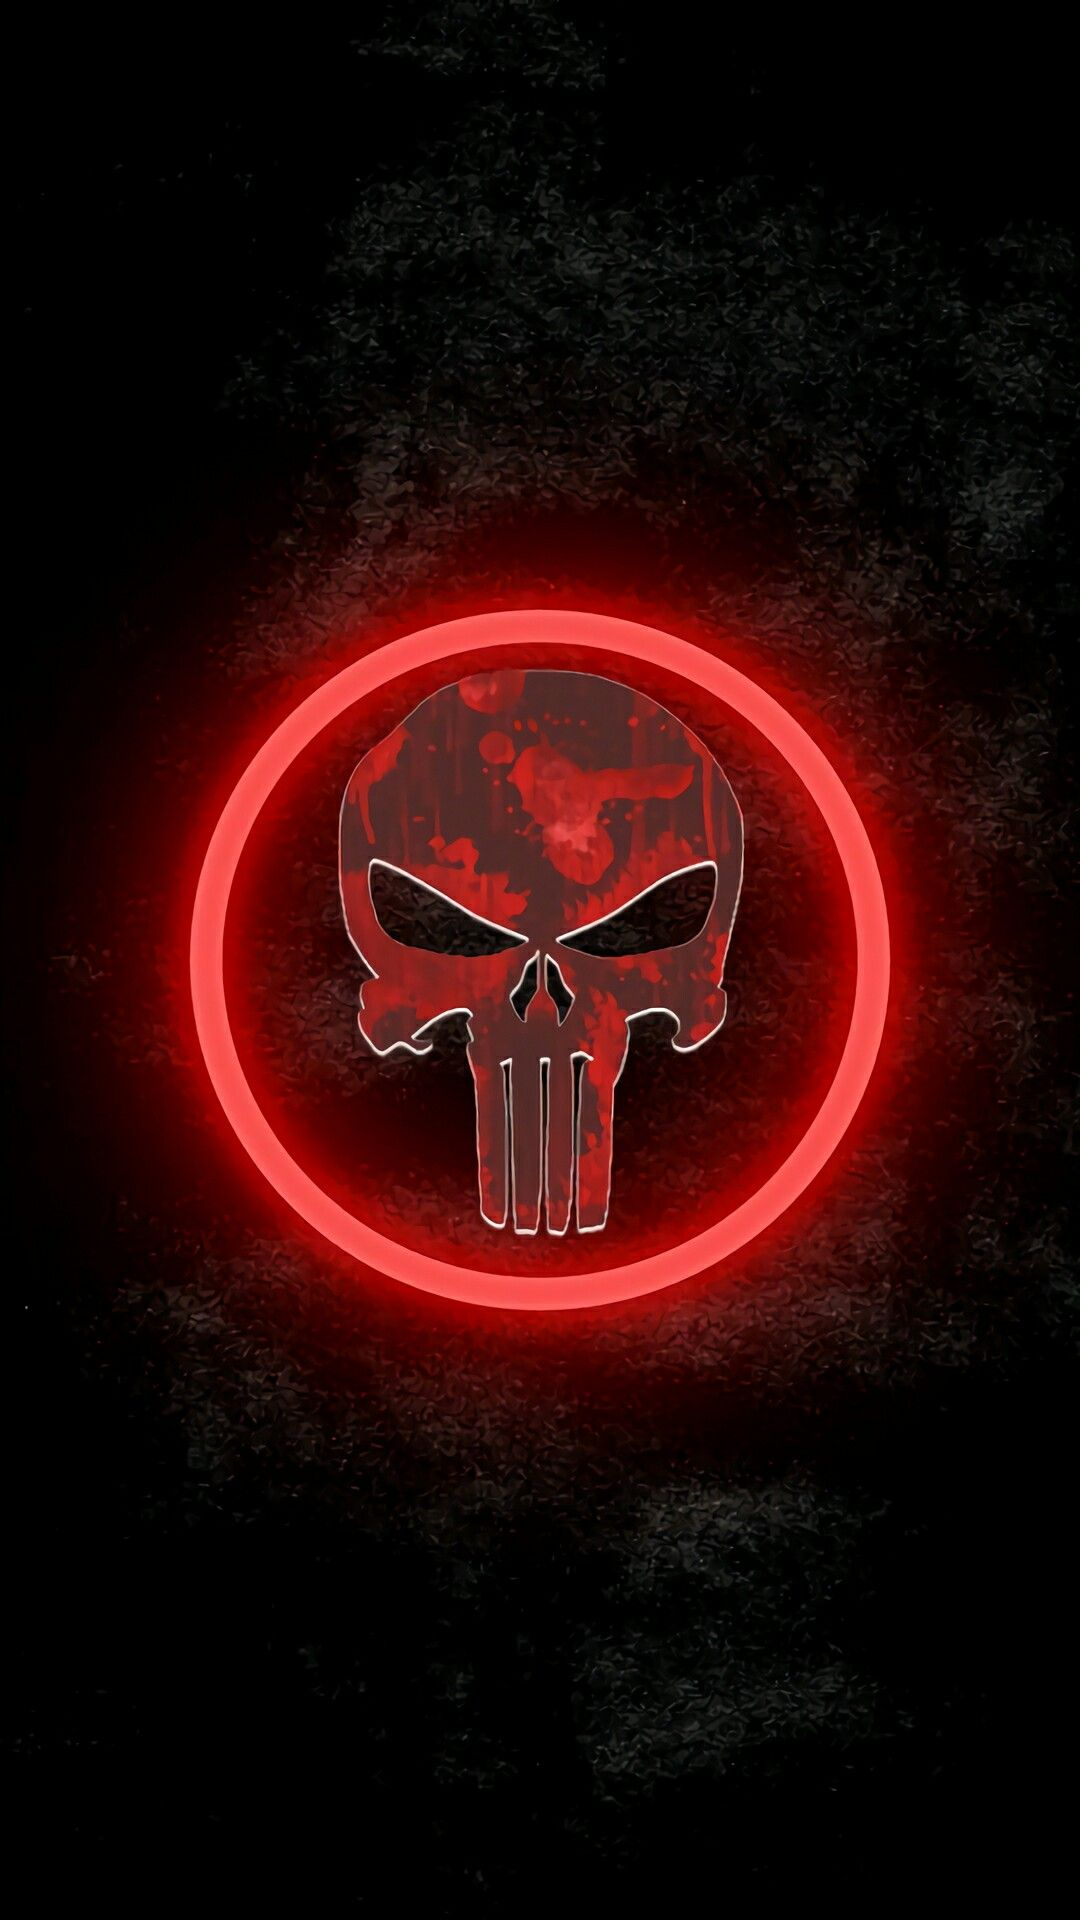 And The Punishers Gun Barrel Glows Blood Red Marvel Punisher